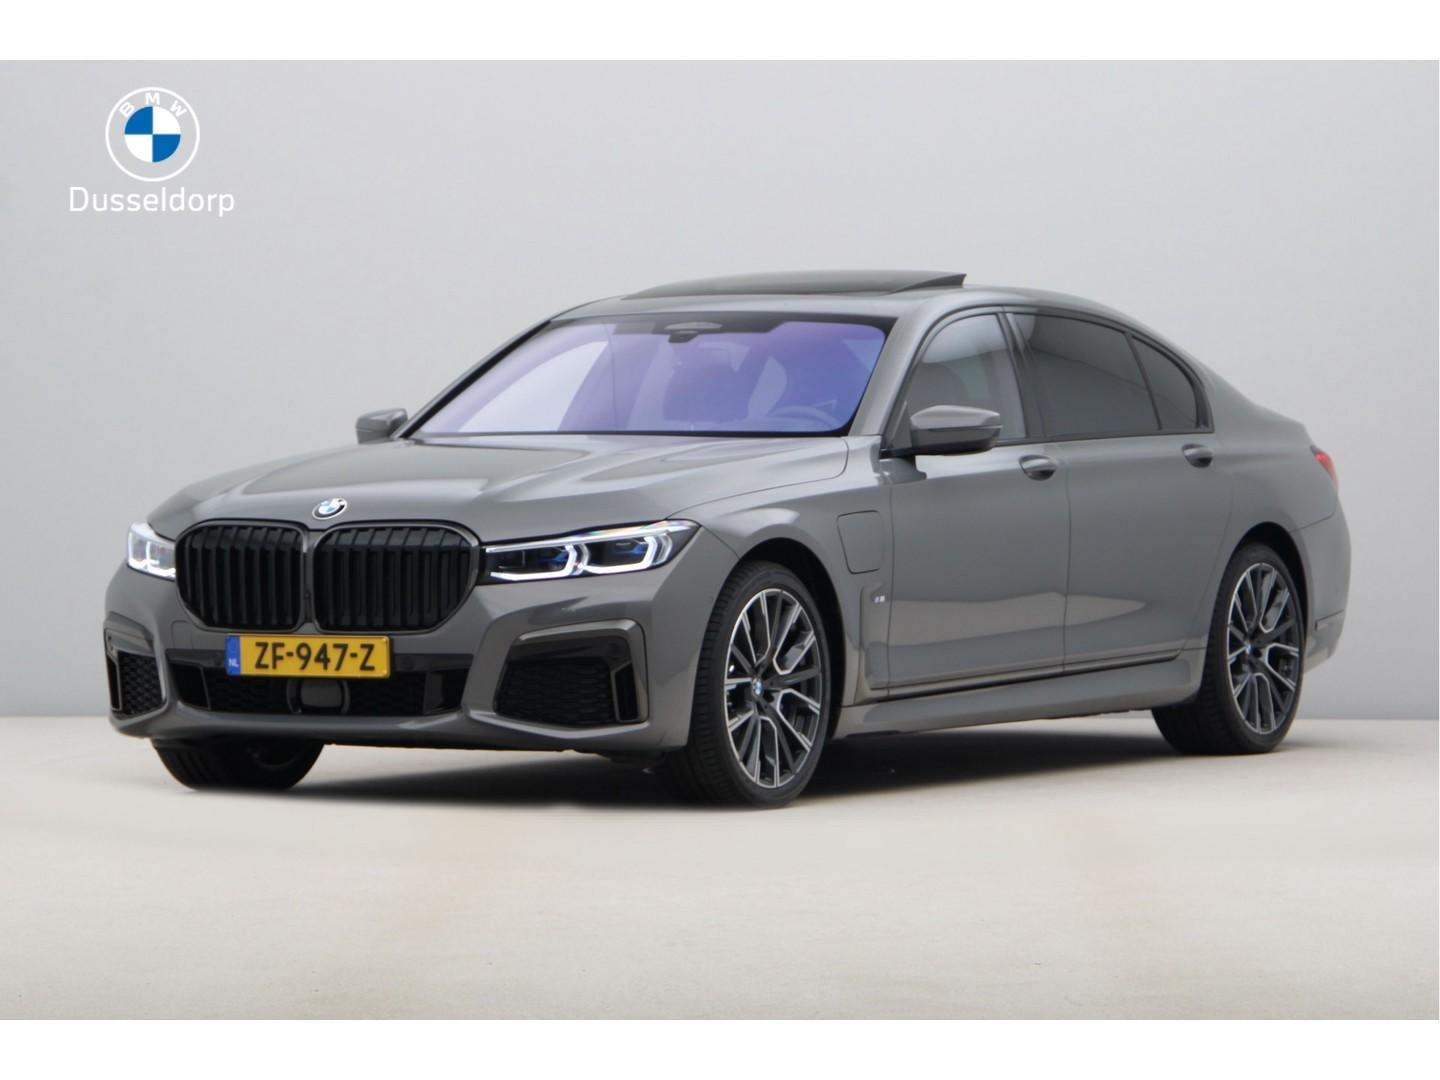 Bmw 7 serie 745le xdrive high executive m-sport nieuwprijs € 173.400,-